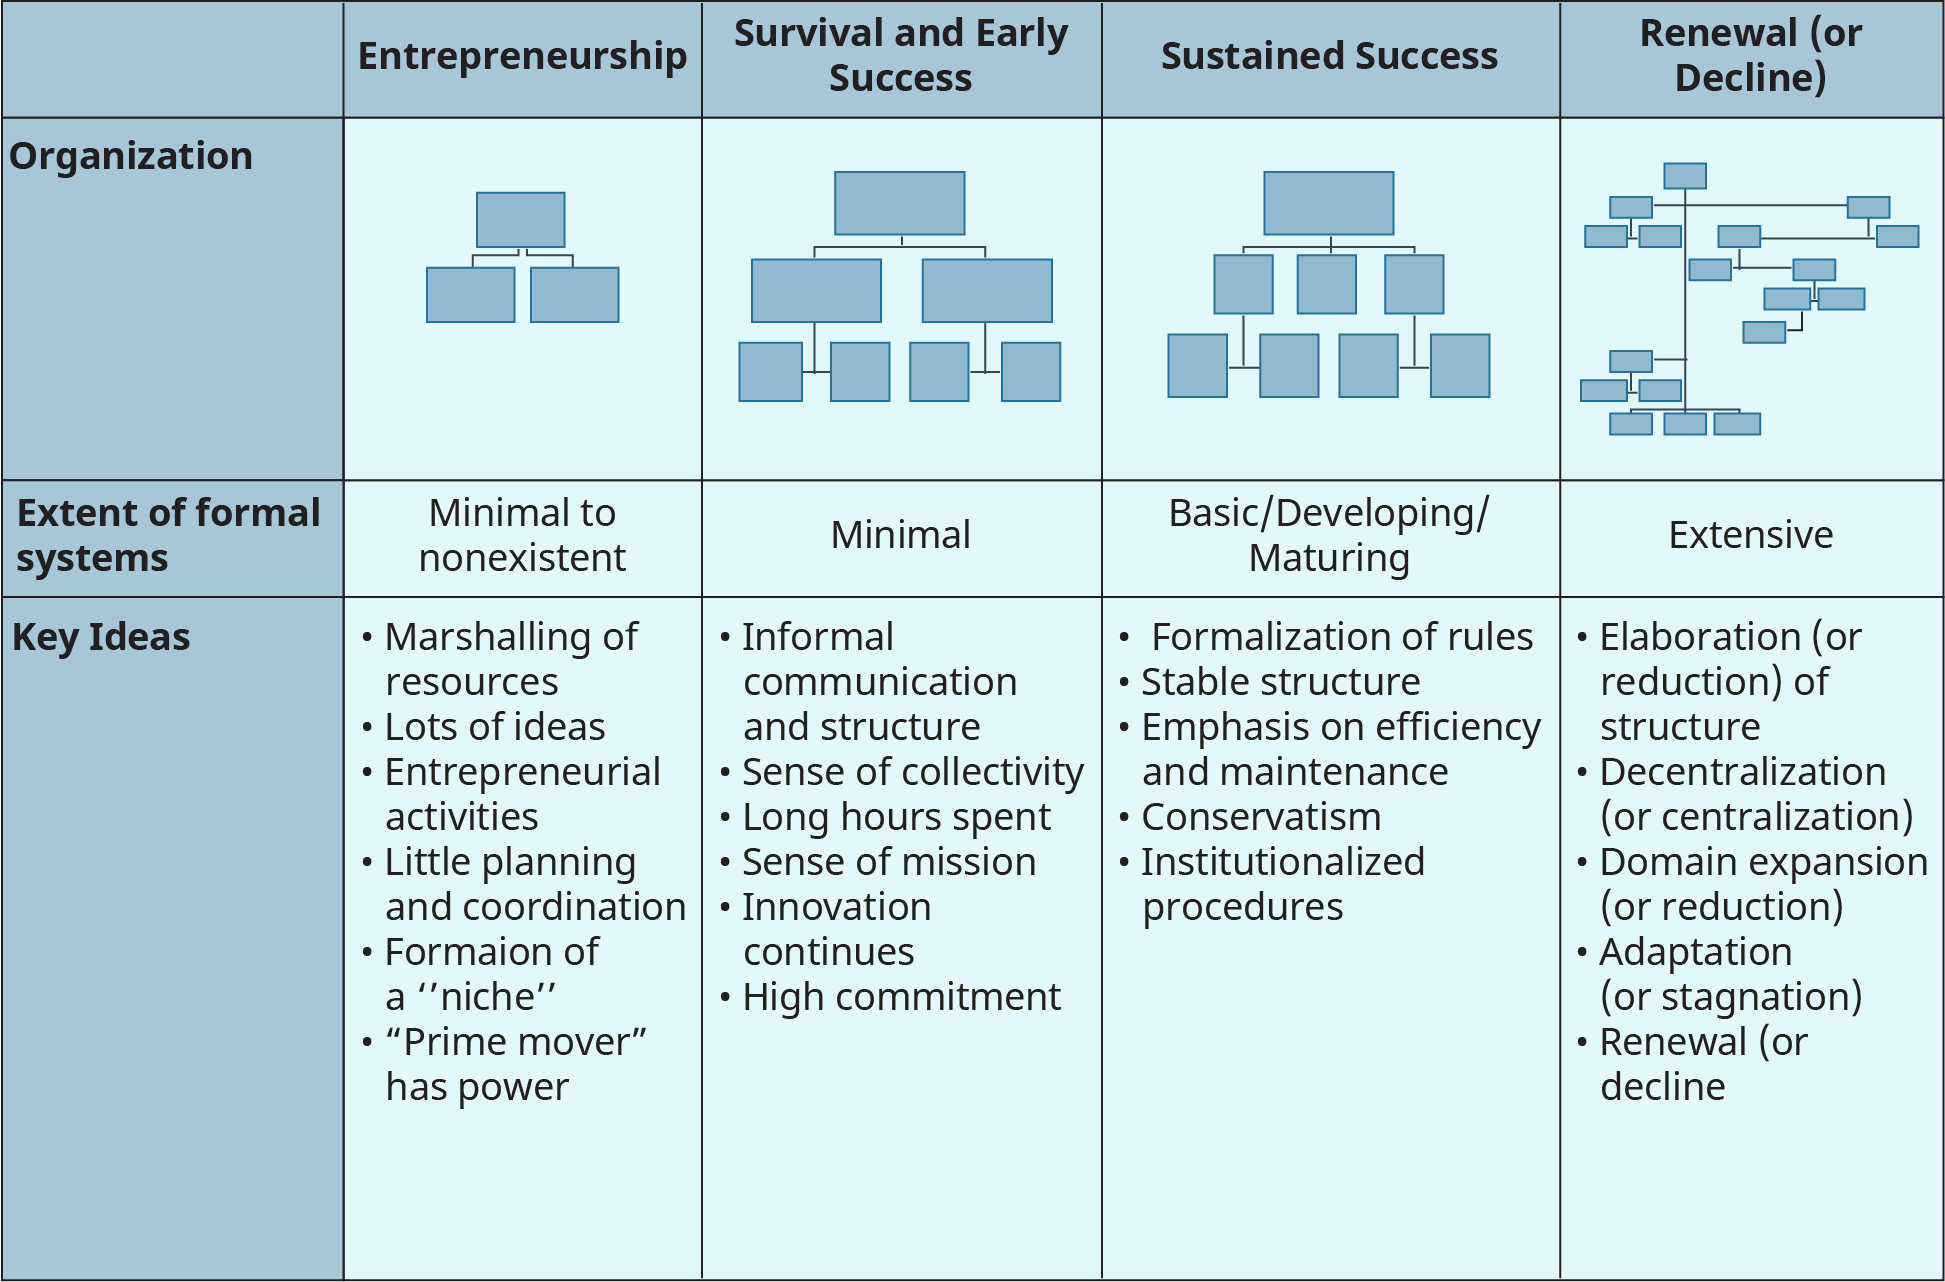 A two-way table shows the patterns and structures that appear in an organization through four phases.